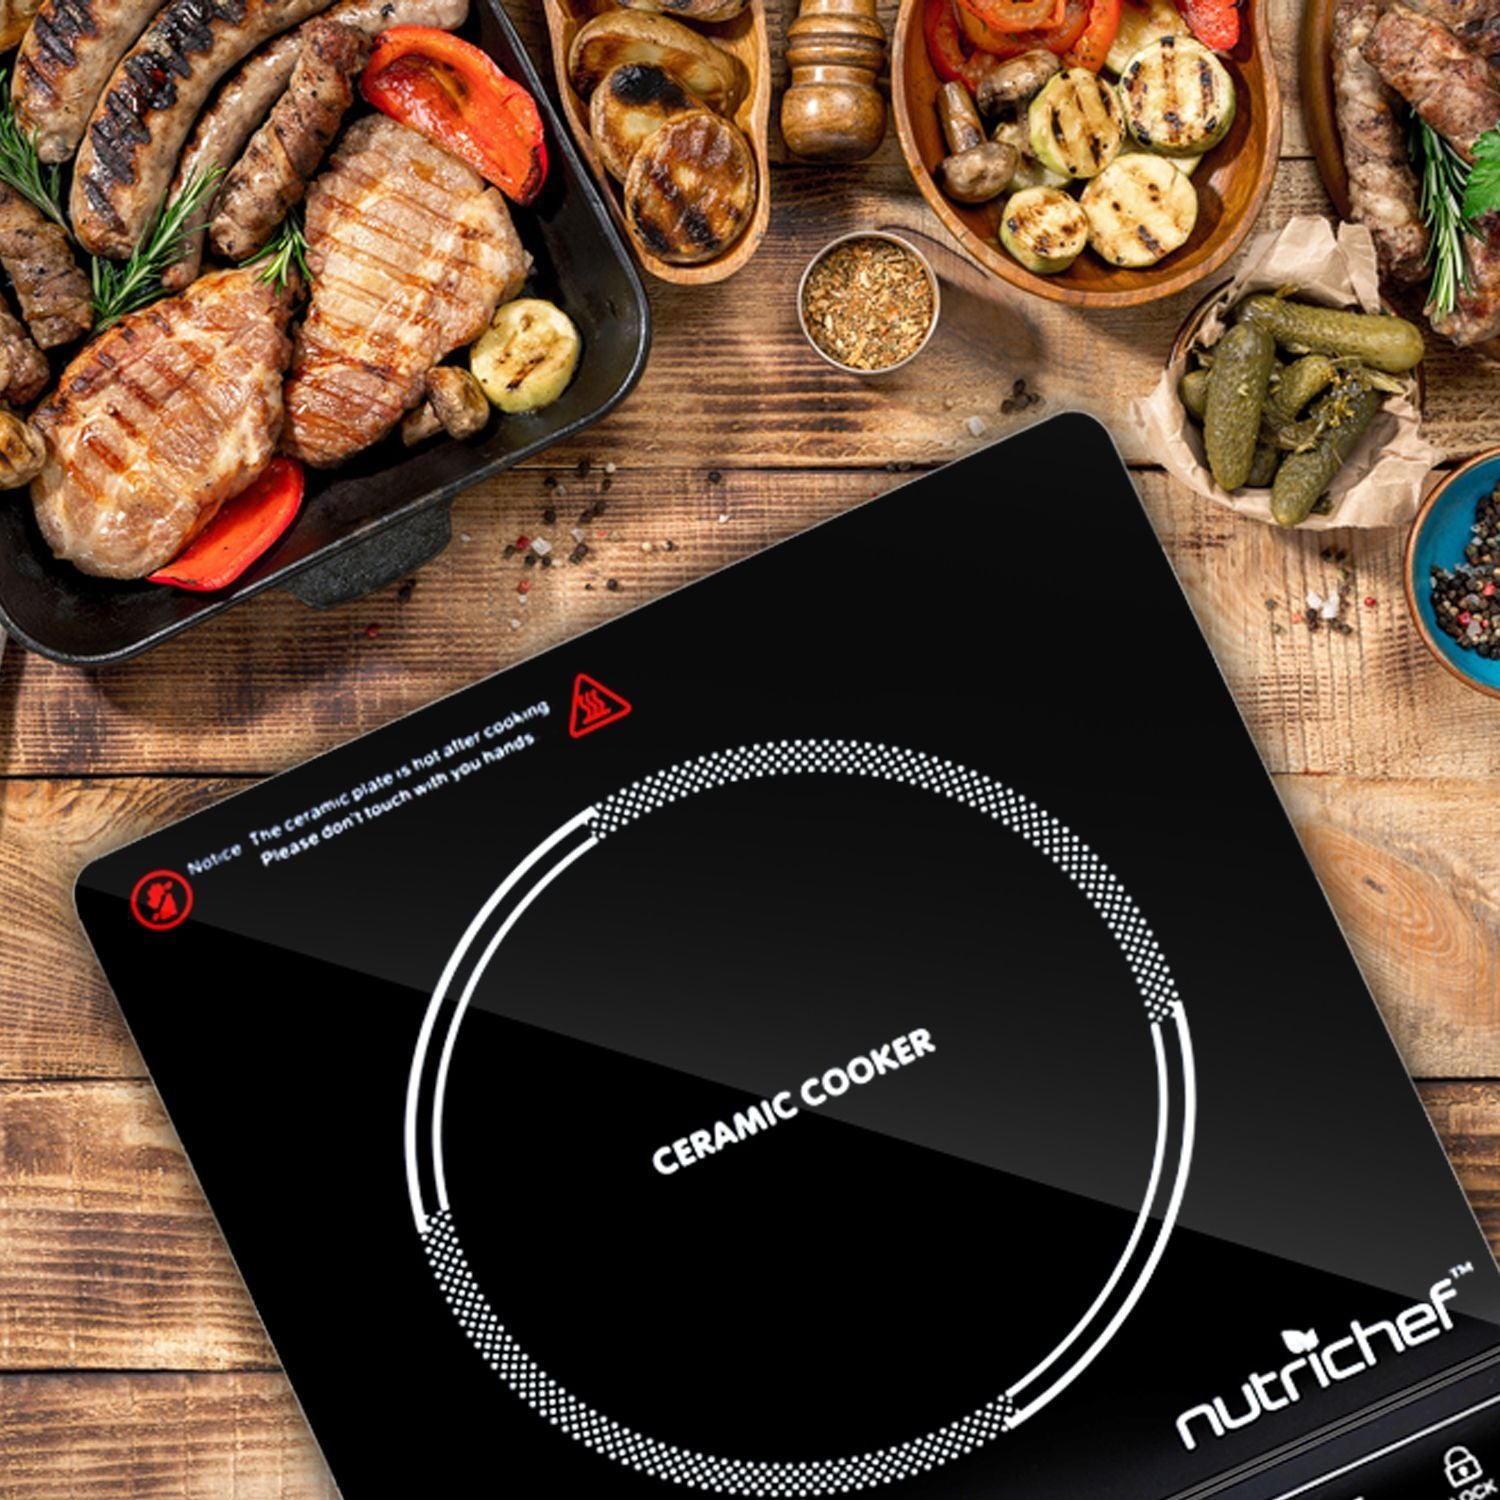 NutriChef B Countertop Burner, Infrared Cooktop, Ceramic Cookware, Electric Stovetop, Black Tempered Glass, LCD Display, Keep Warm, 1200W, 120V (PKST14)